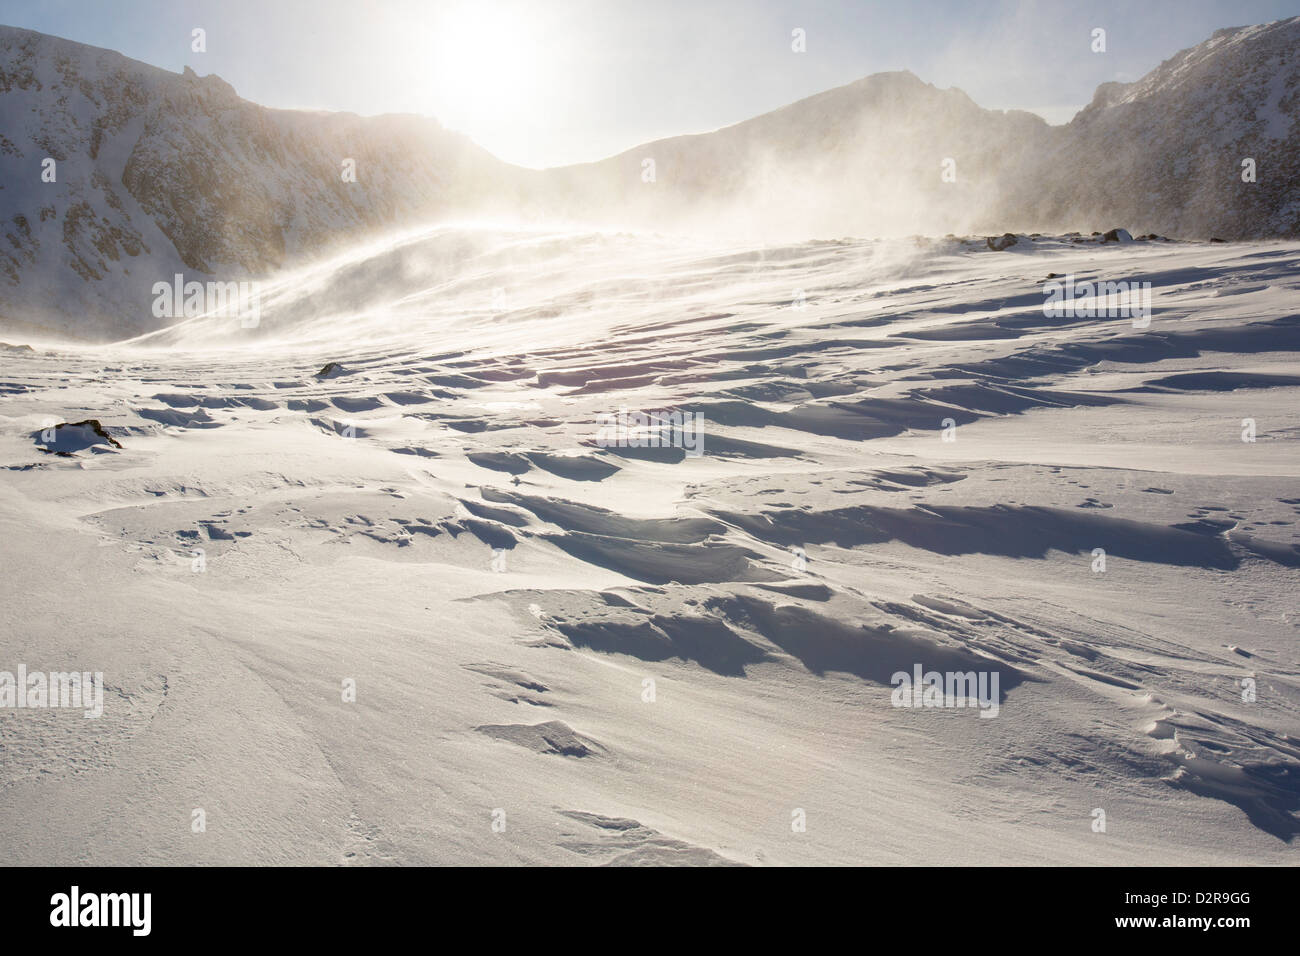 Drifting snow in Coire an Sneachda in the Cairngorm mountains, Scotland, UK. - Stock Image